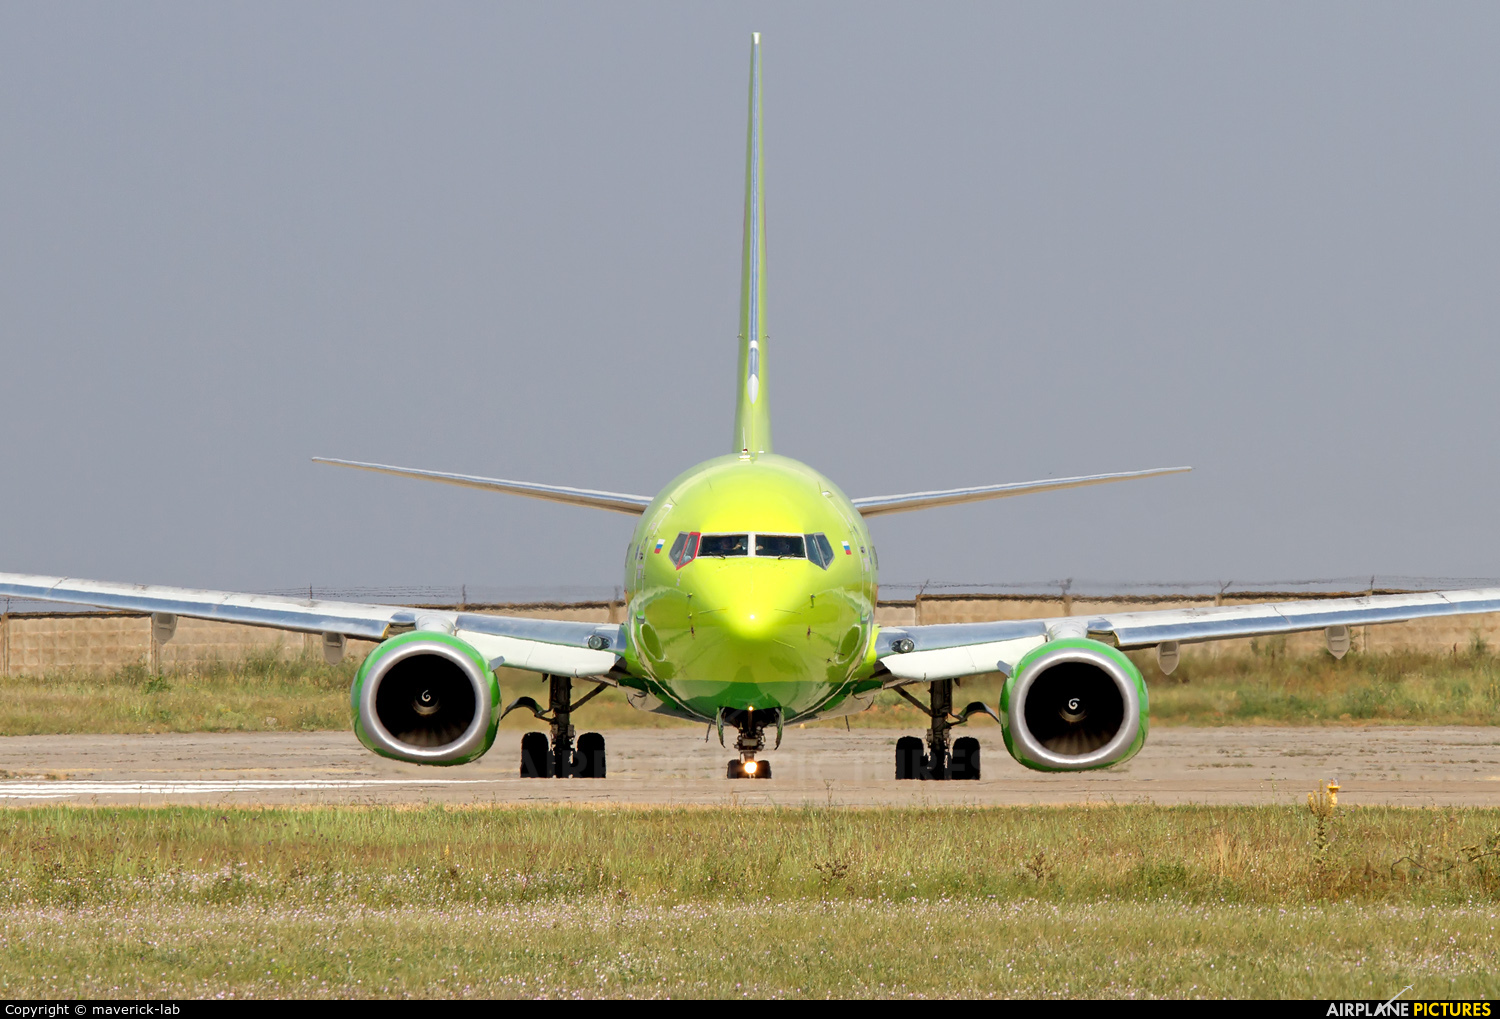 S7 Airlines VQ-BKV aircraft at Simferepol Intl